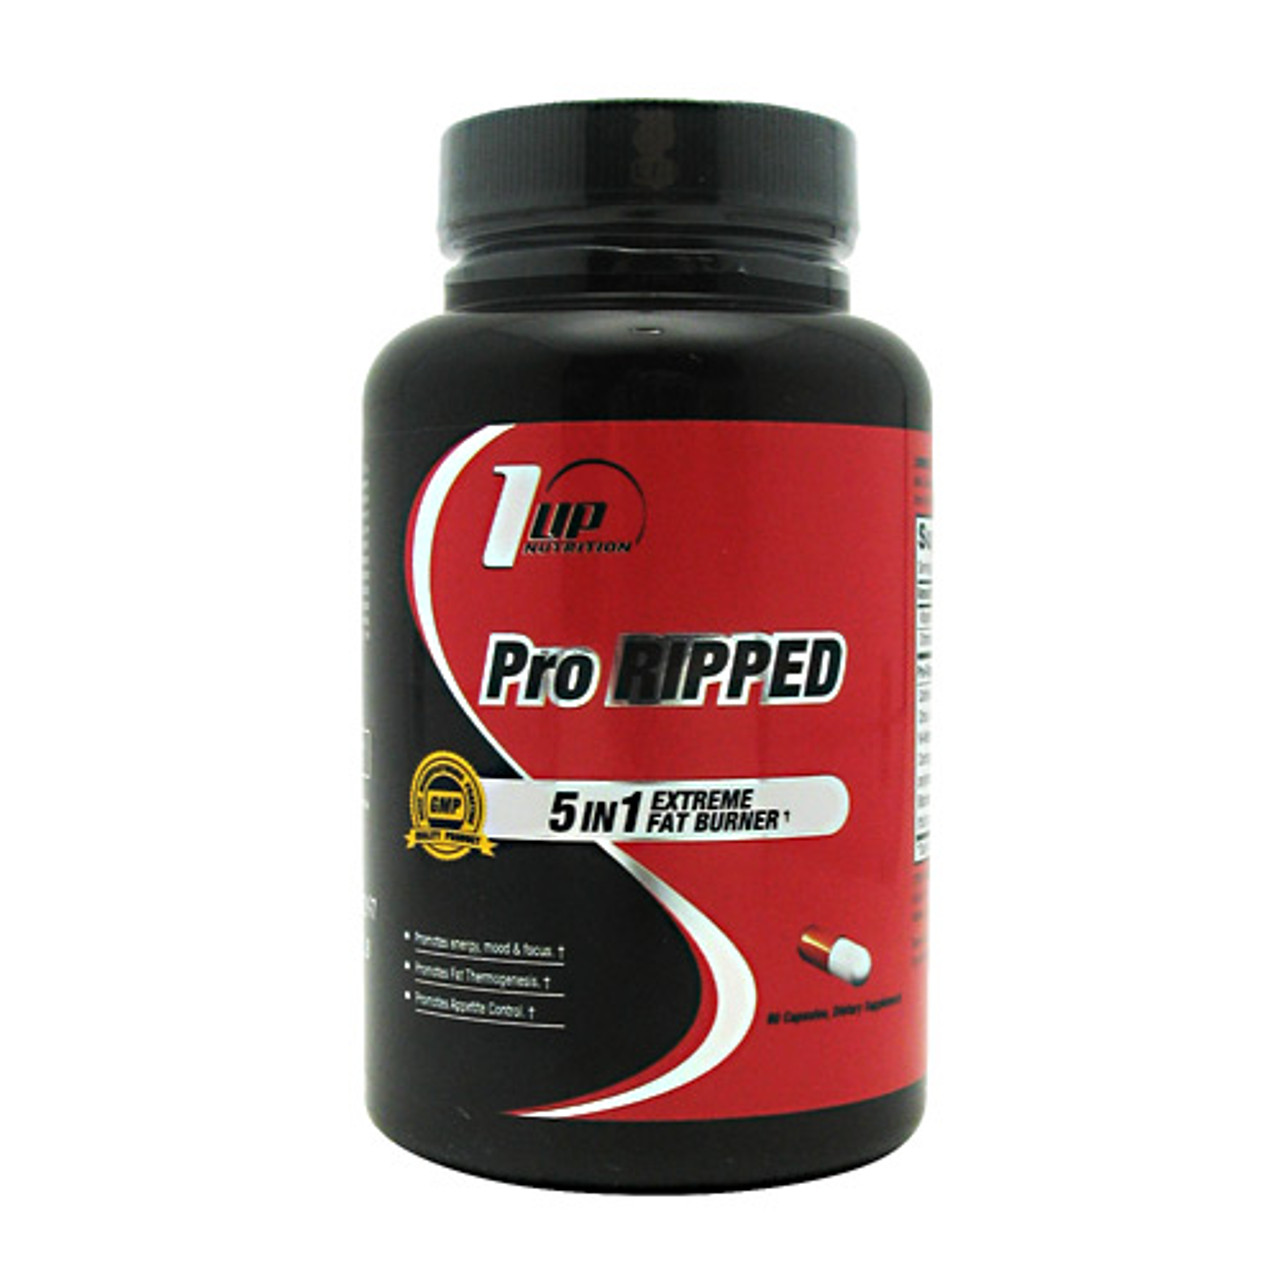 Clearance Pro Ripped 60ct 1 Up Nutrition